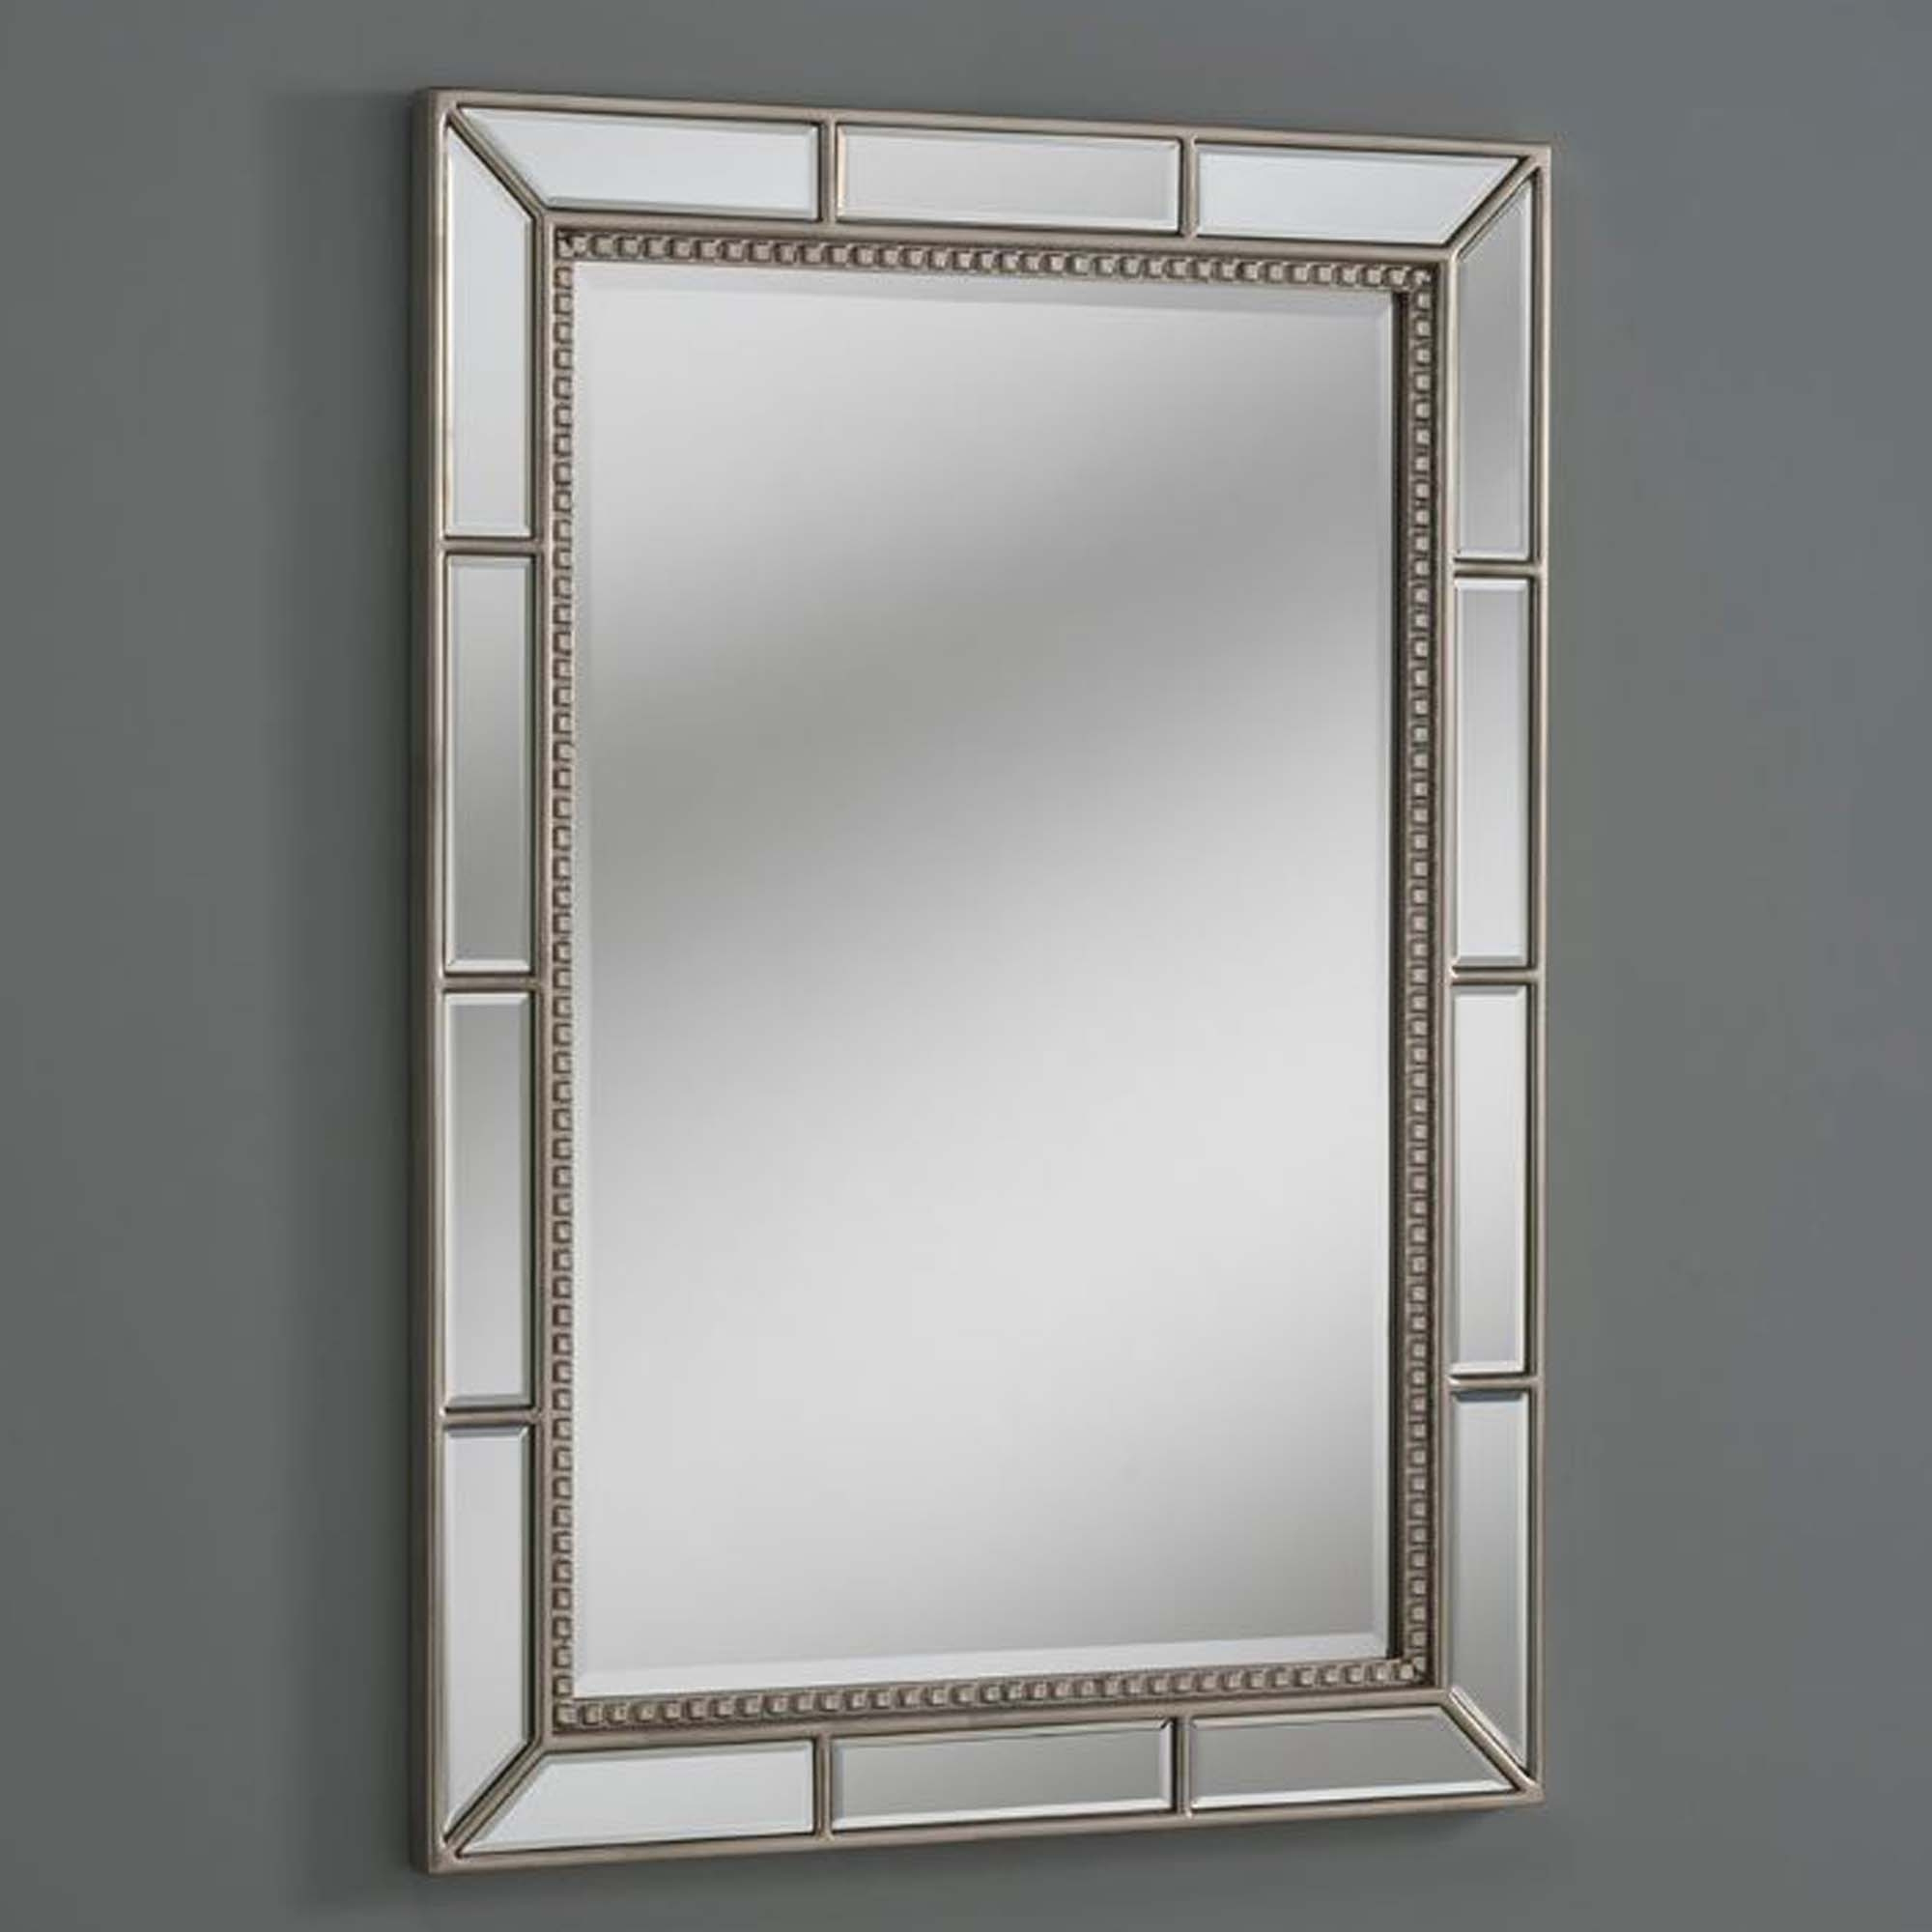 Well Liked Silver Framed Wall Mirrors For Mirrored Wall Mirror Silver Bevelled Frame (Gallery 5 of 20)